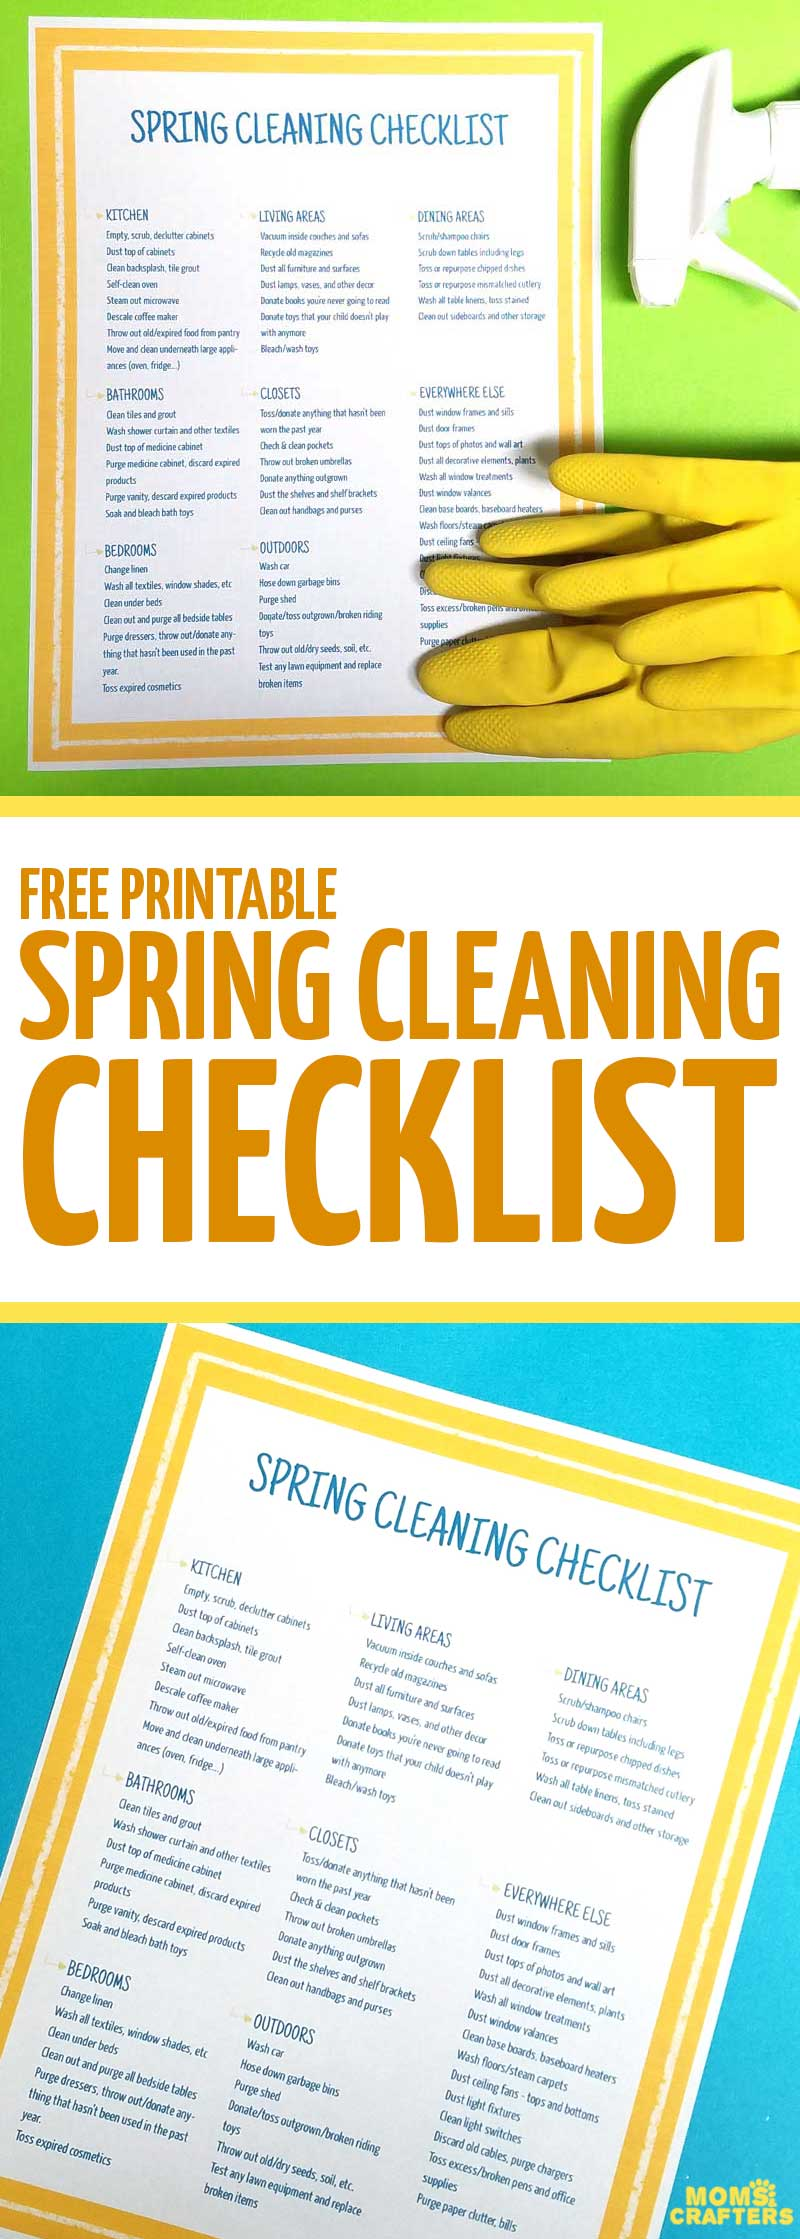 One of my favorite spring cleaning tips: use a free printable spring cleaning checklist to make sure you don't forget anything! This in-depth checklist is so pretty to keep around and easy to use. #springcleaning #cleaningtips #momsandcrafters